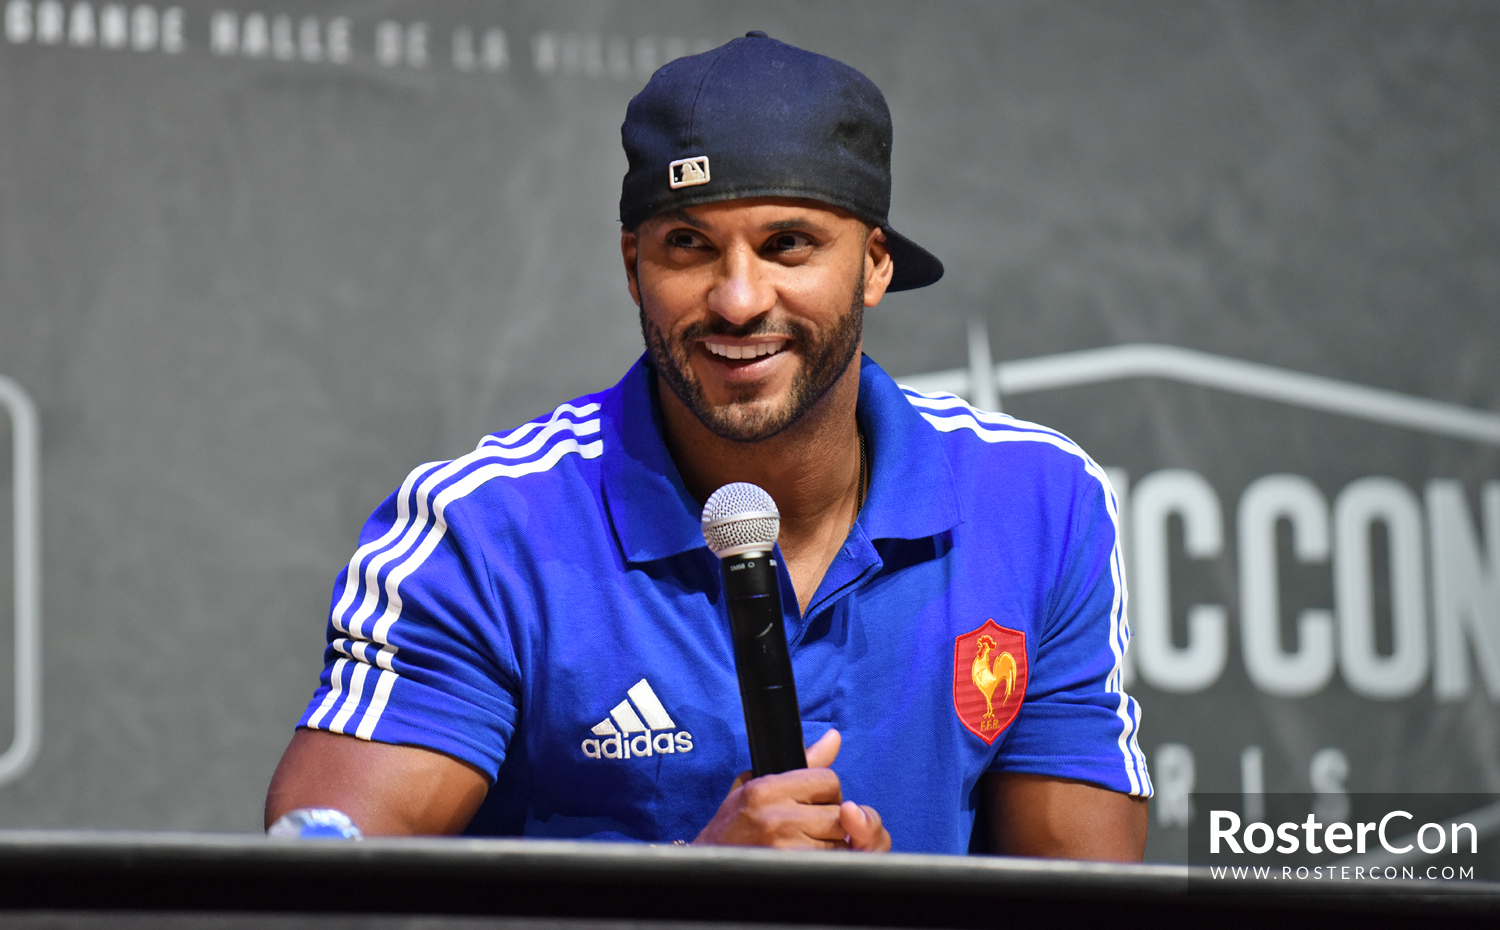 Ricky Whittle | Roster Con